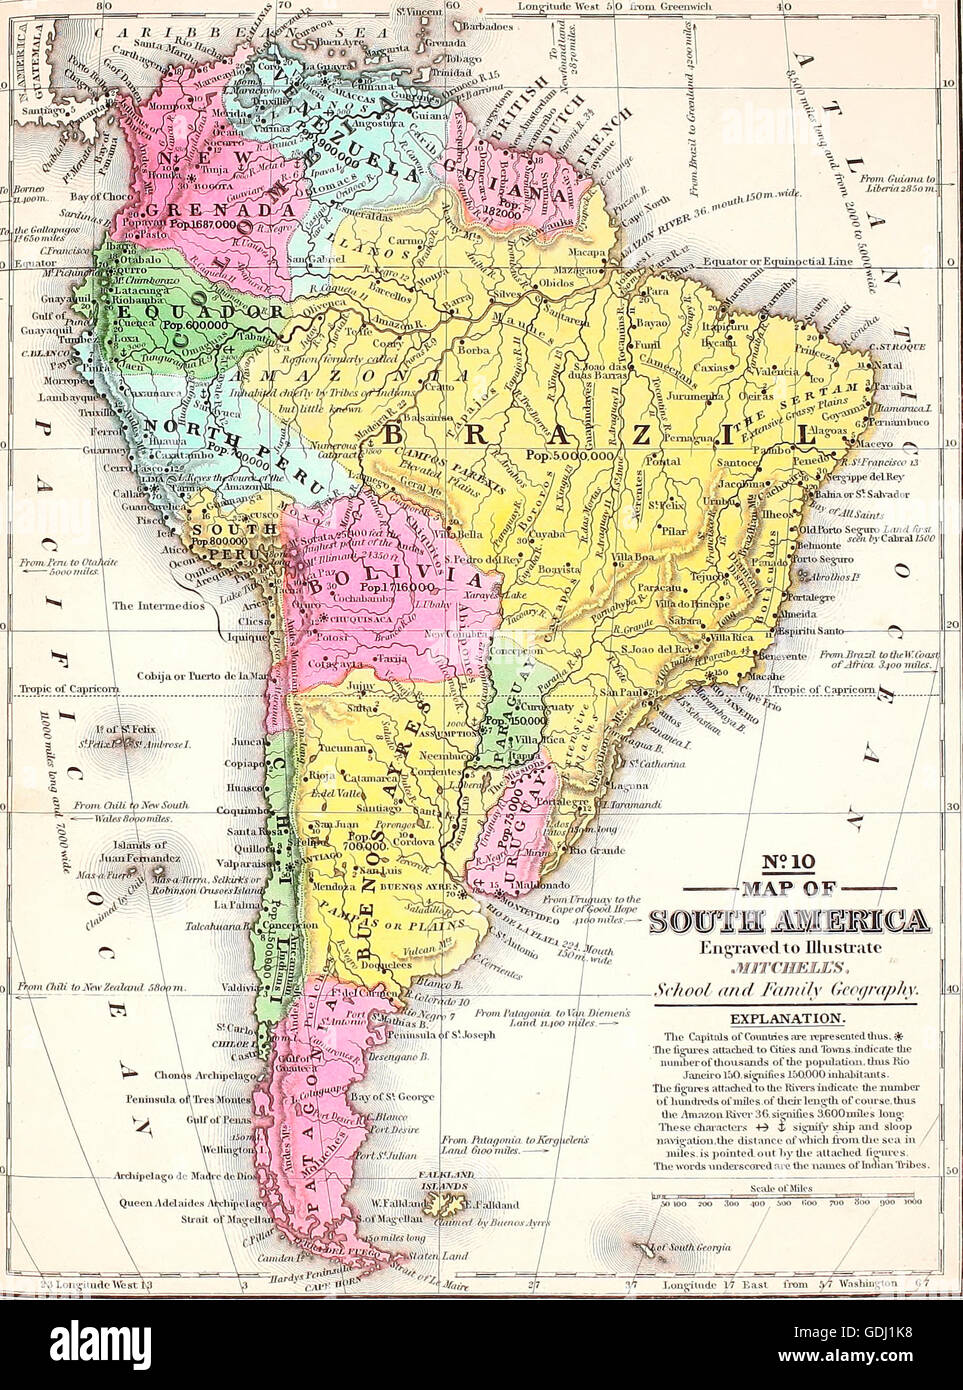 Map of South America, circa 1860 Stock Photo: 111649196 - Alamy Map Of America on map of civil war 1860, map of usa in 1860, map of religion in 1860, map of the united states 1860, map of prussia 1860, map of boston 1860, map of kansas 1860, map of chicago 1860, map of alabama 1860, map of western states in 1860, map of u.s. 1860,